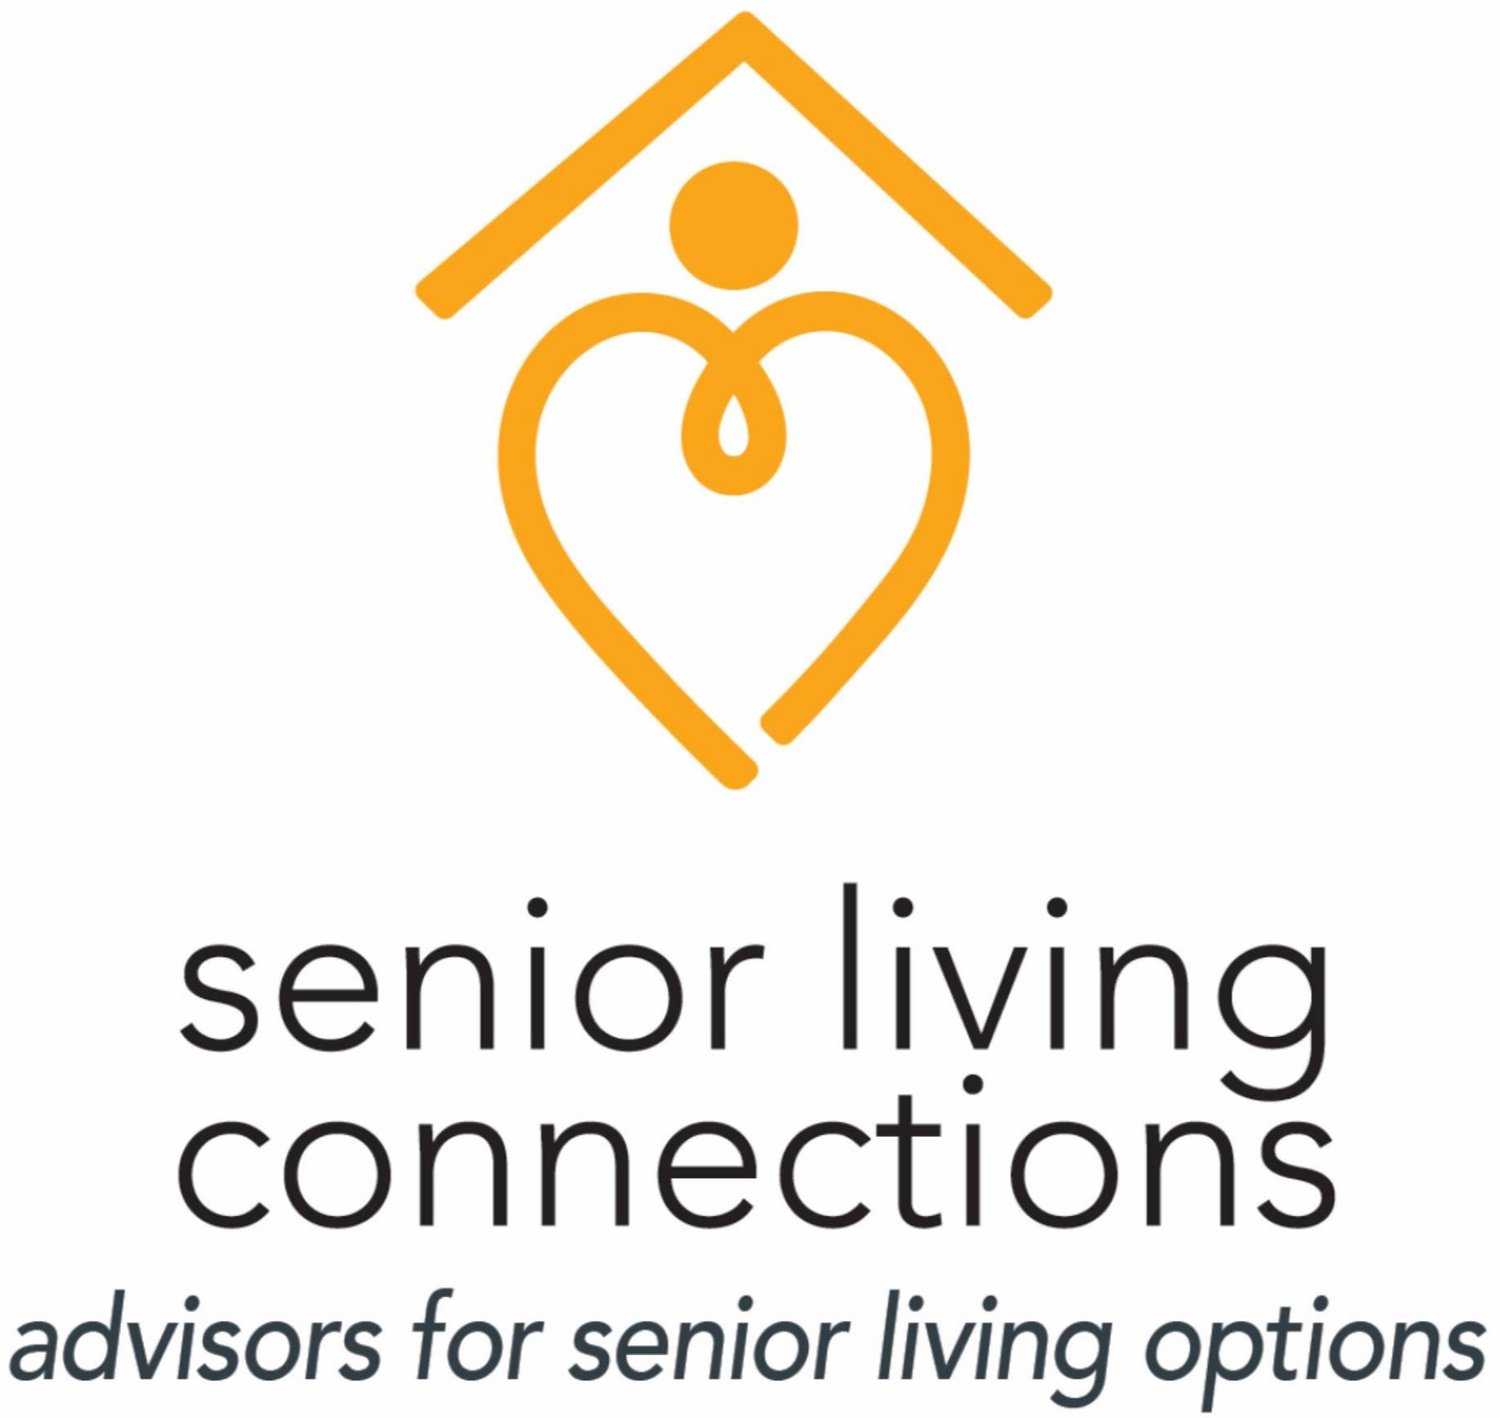 Senior Living Connections